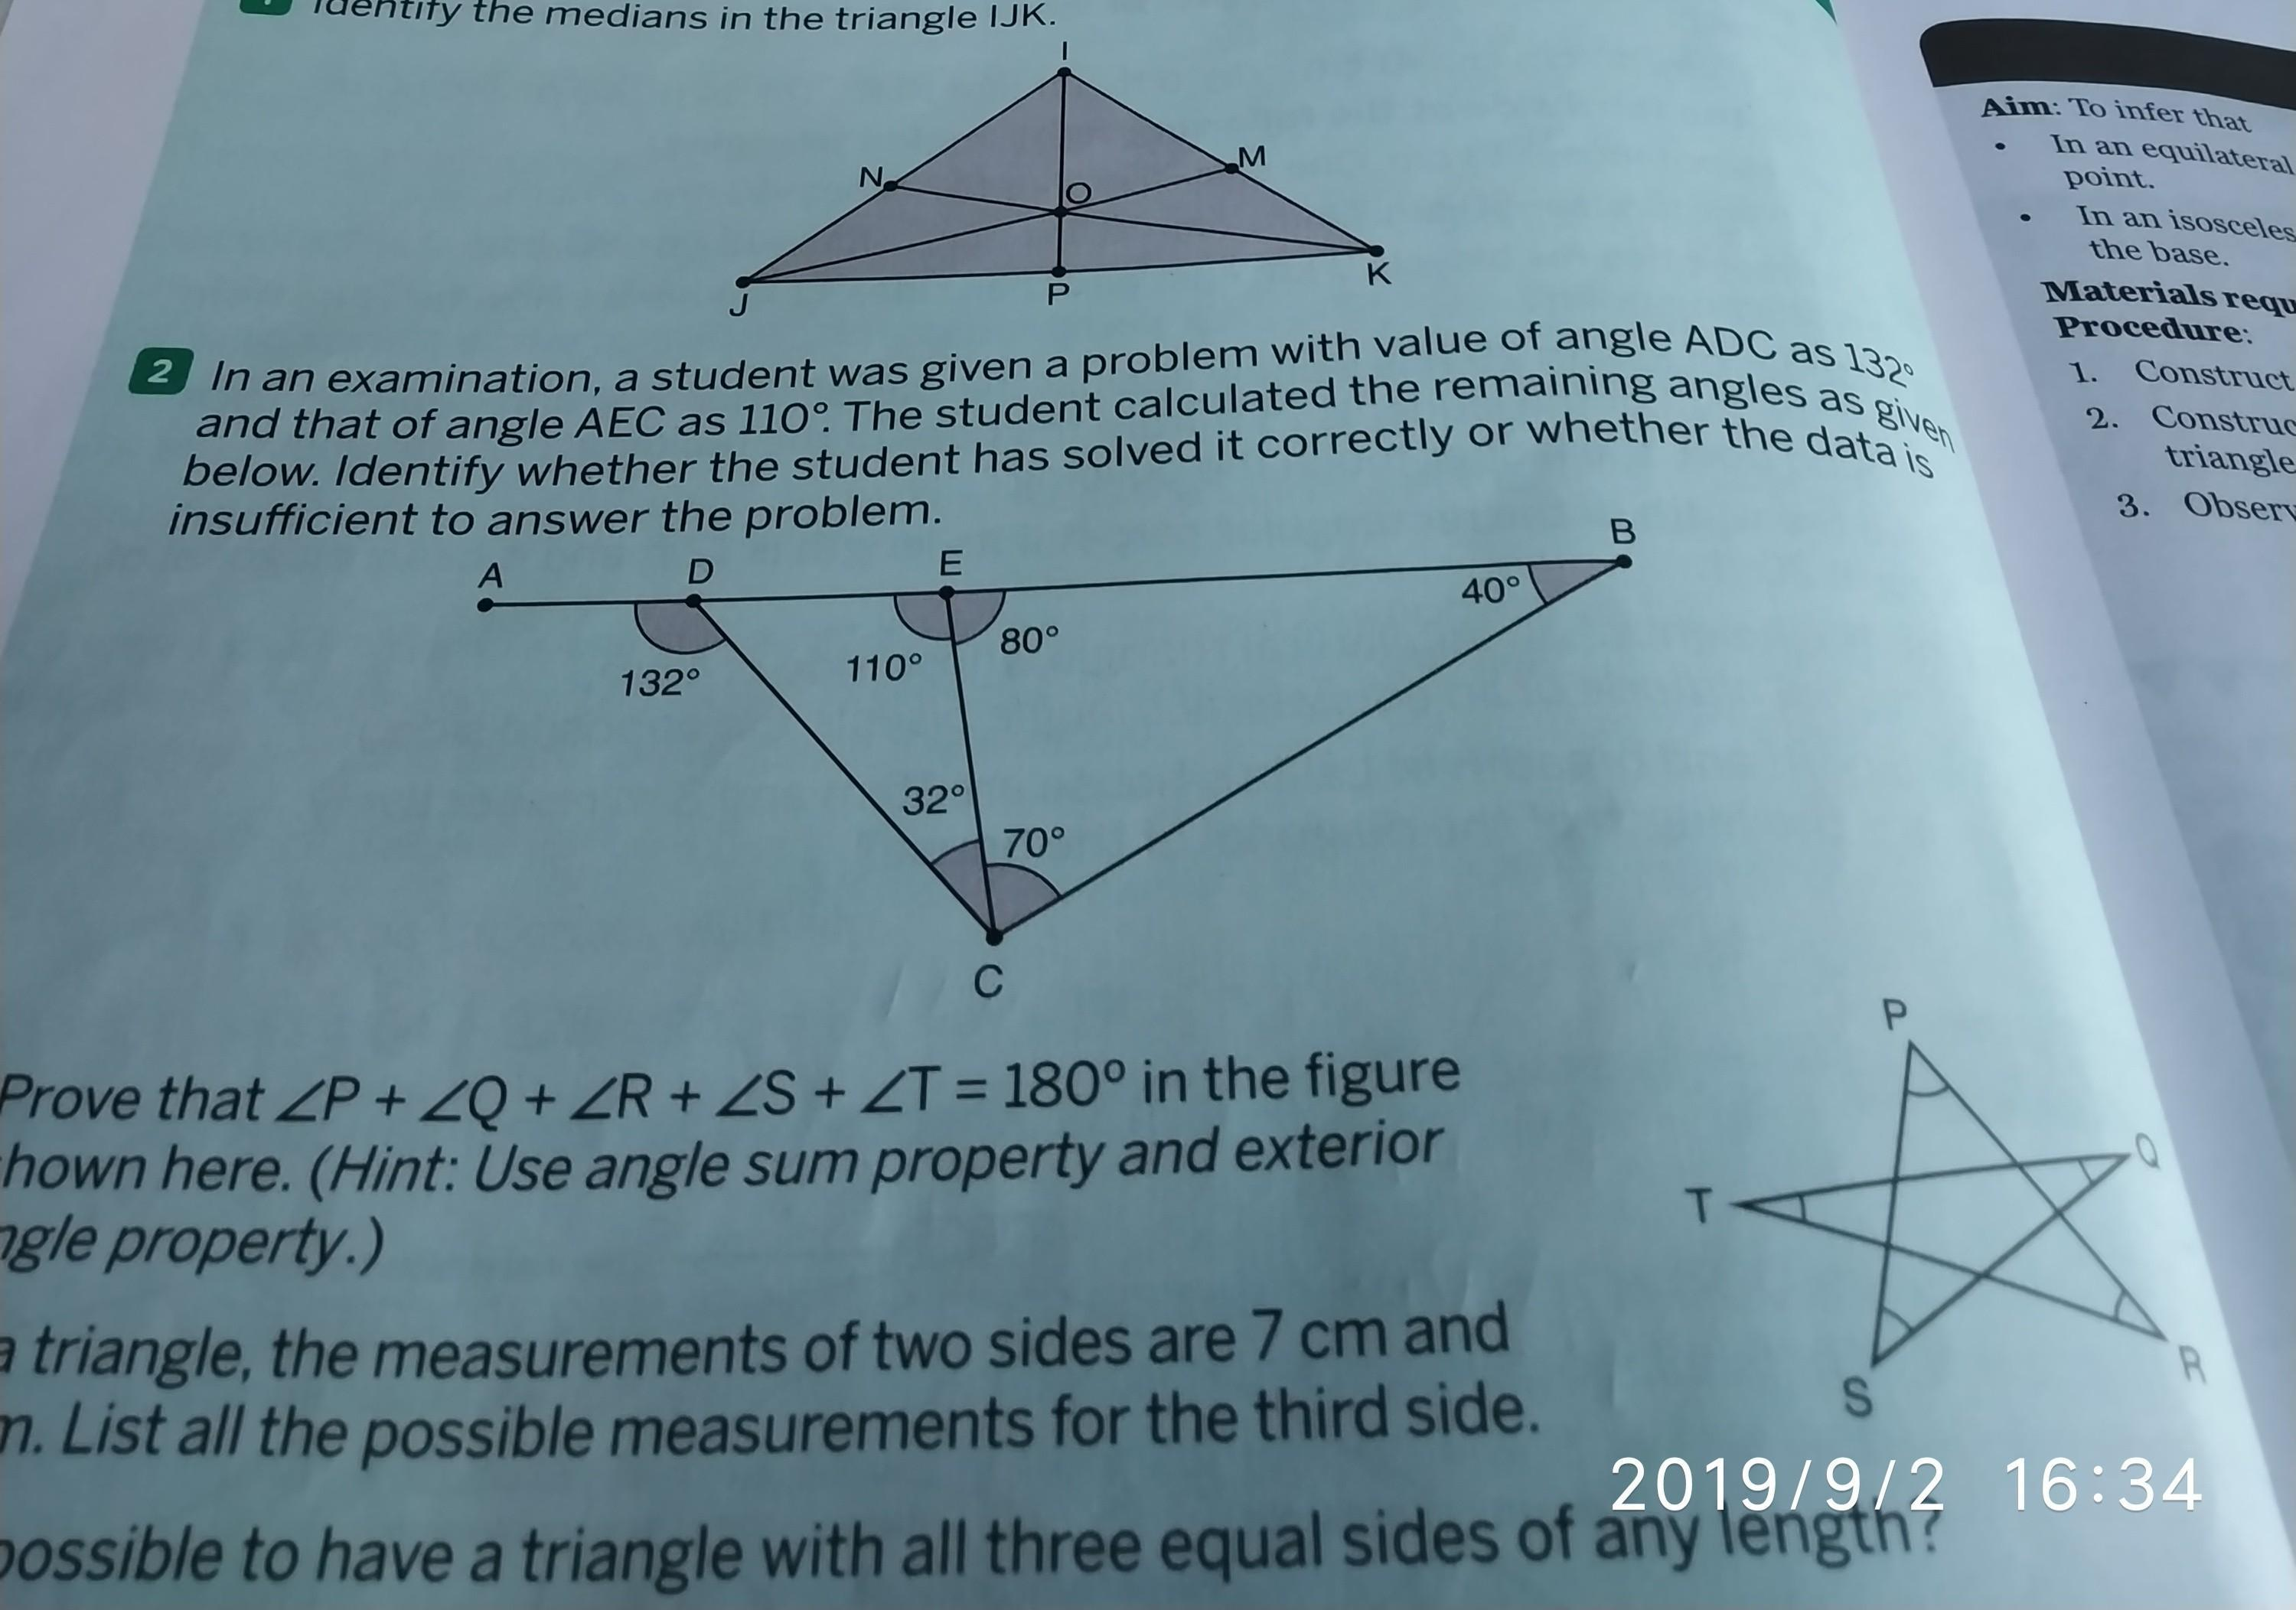 plzz solve questions number (2) - Brainly in